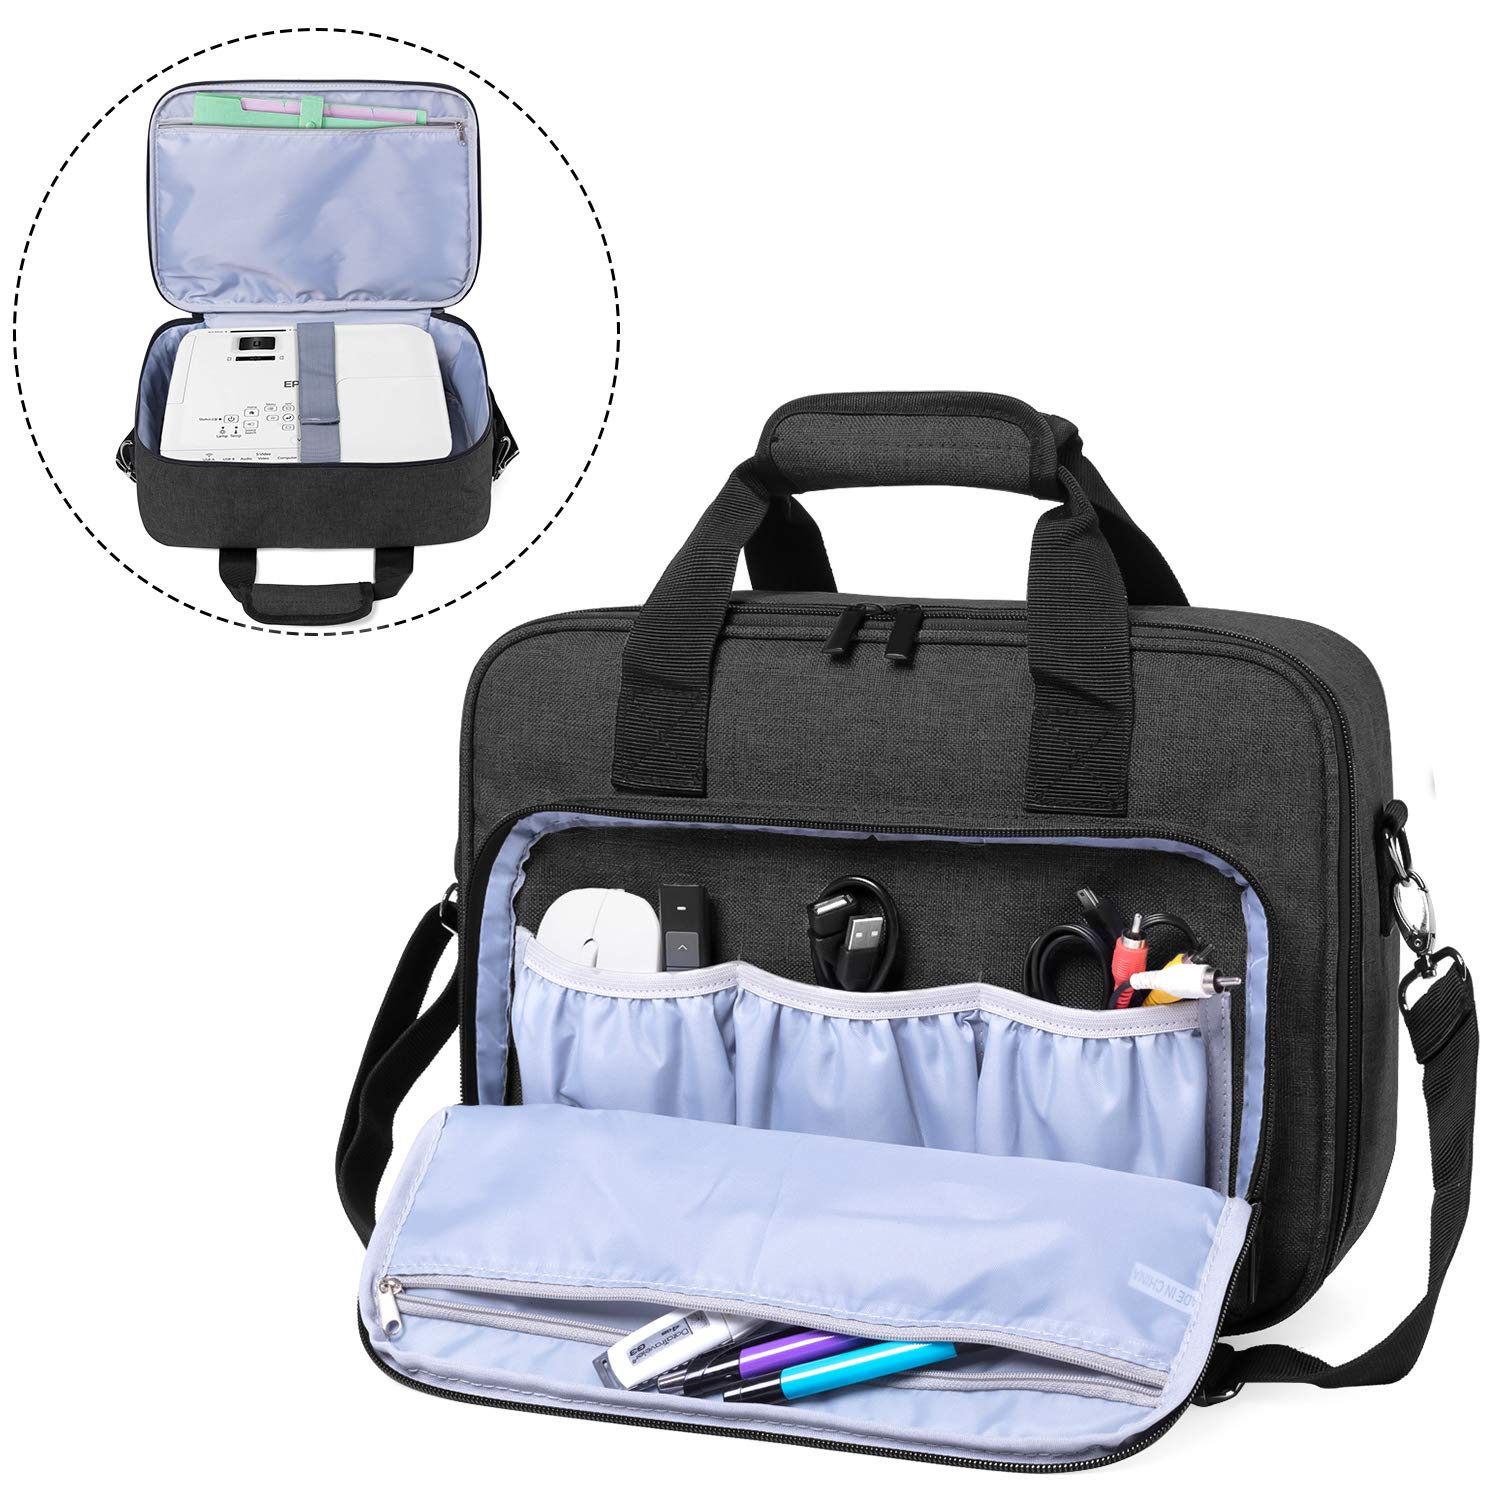 Luxja Projector Case, Projector Bag with Accessories Storage Pockets (Compatible with Most Major Projectors), Black by LUXJA